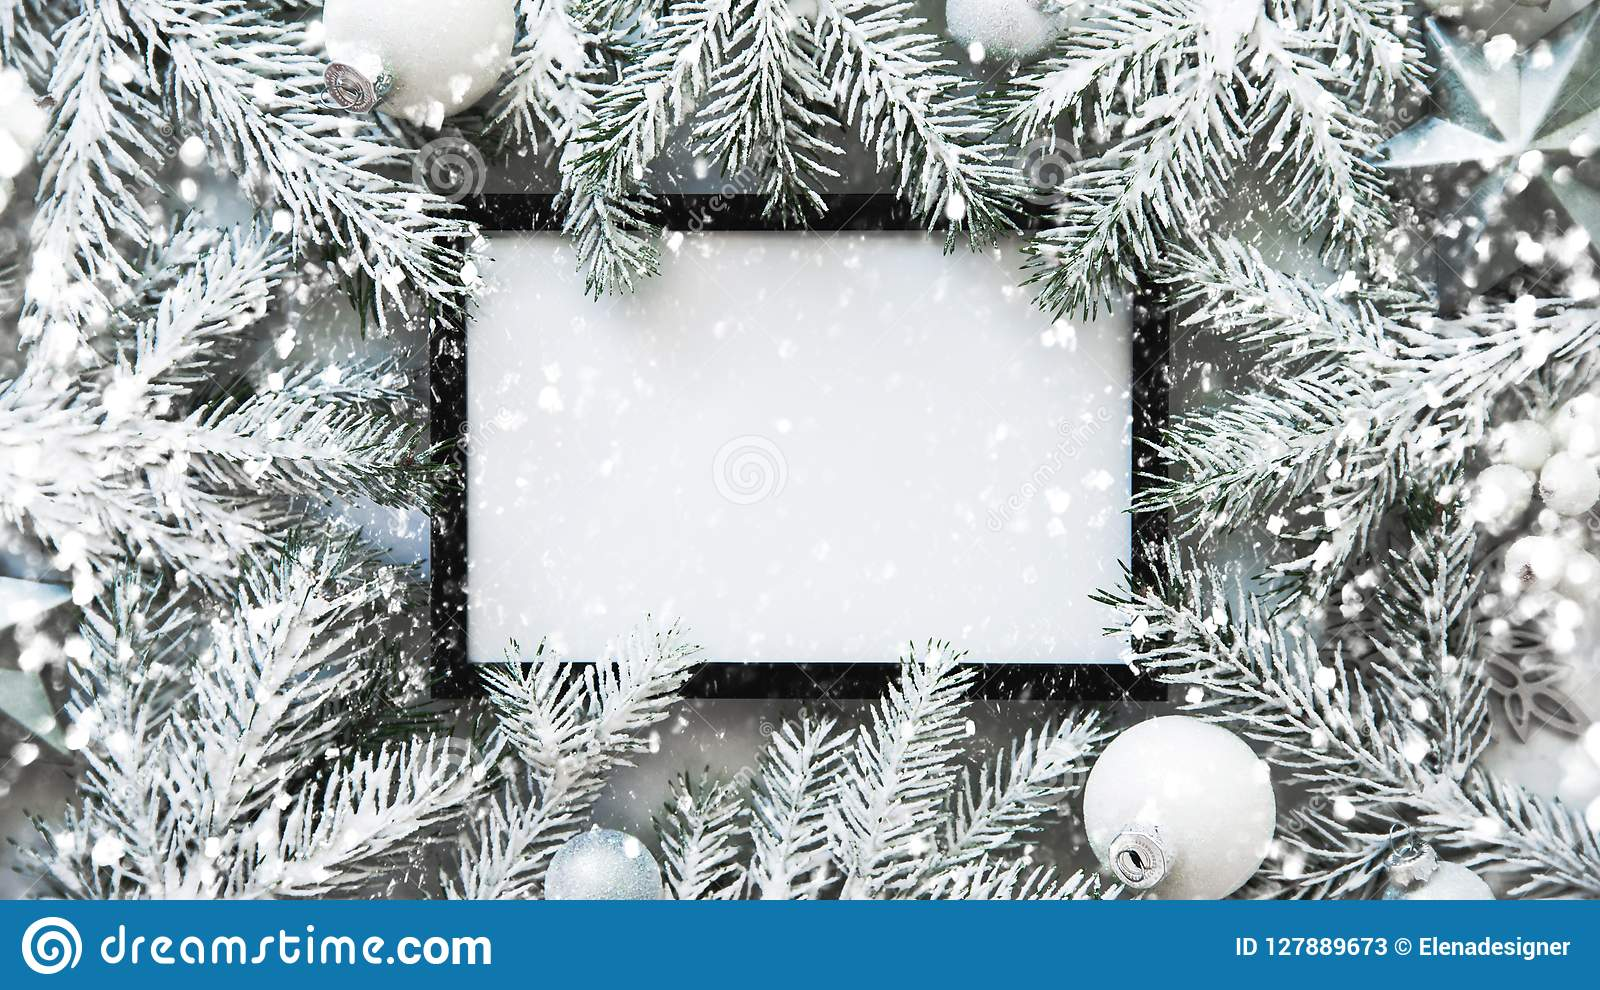 Christmas frame background with xmas tree and xmas decorations. Merry christmas greeting card, banner. Winter holiday theme.